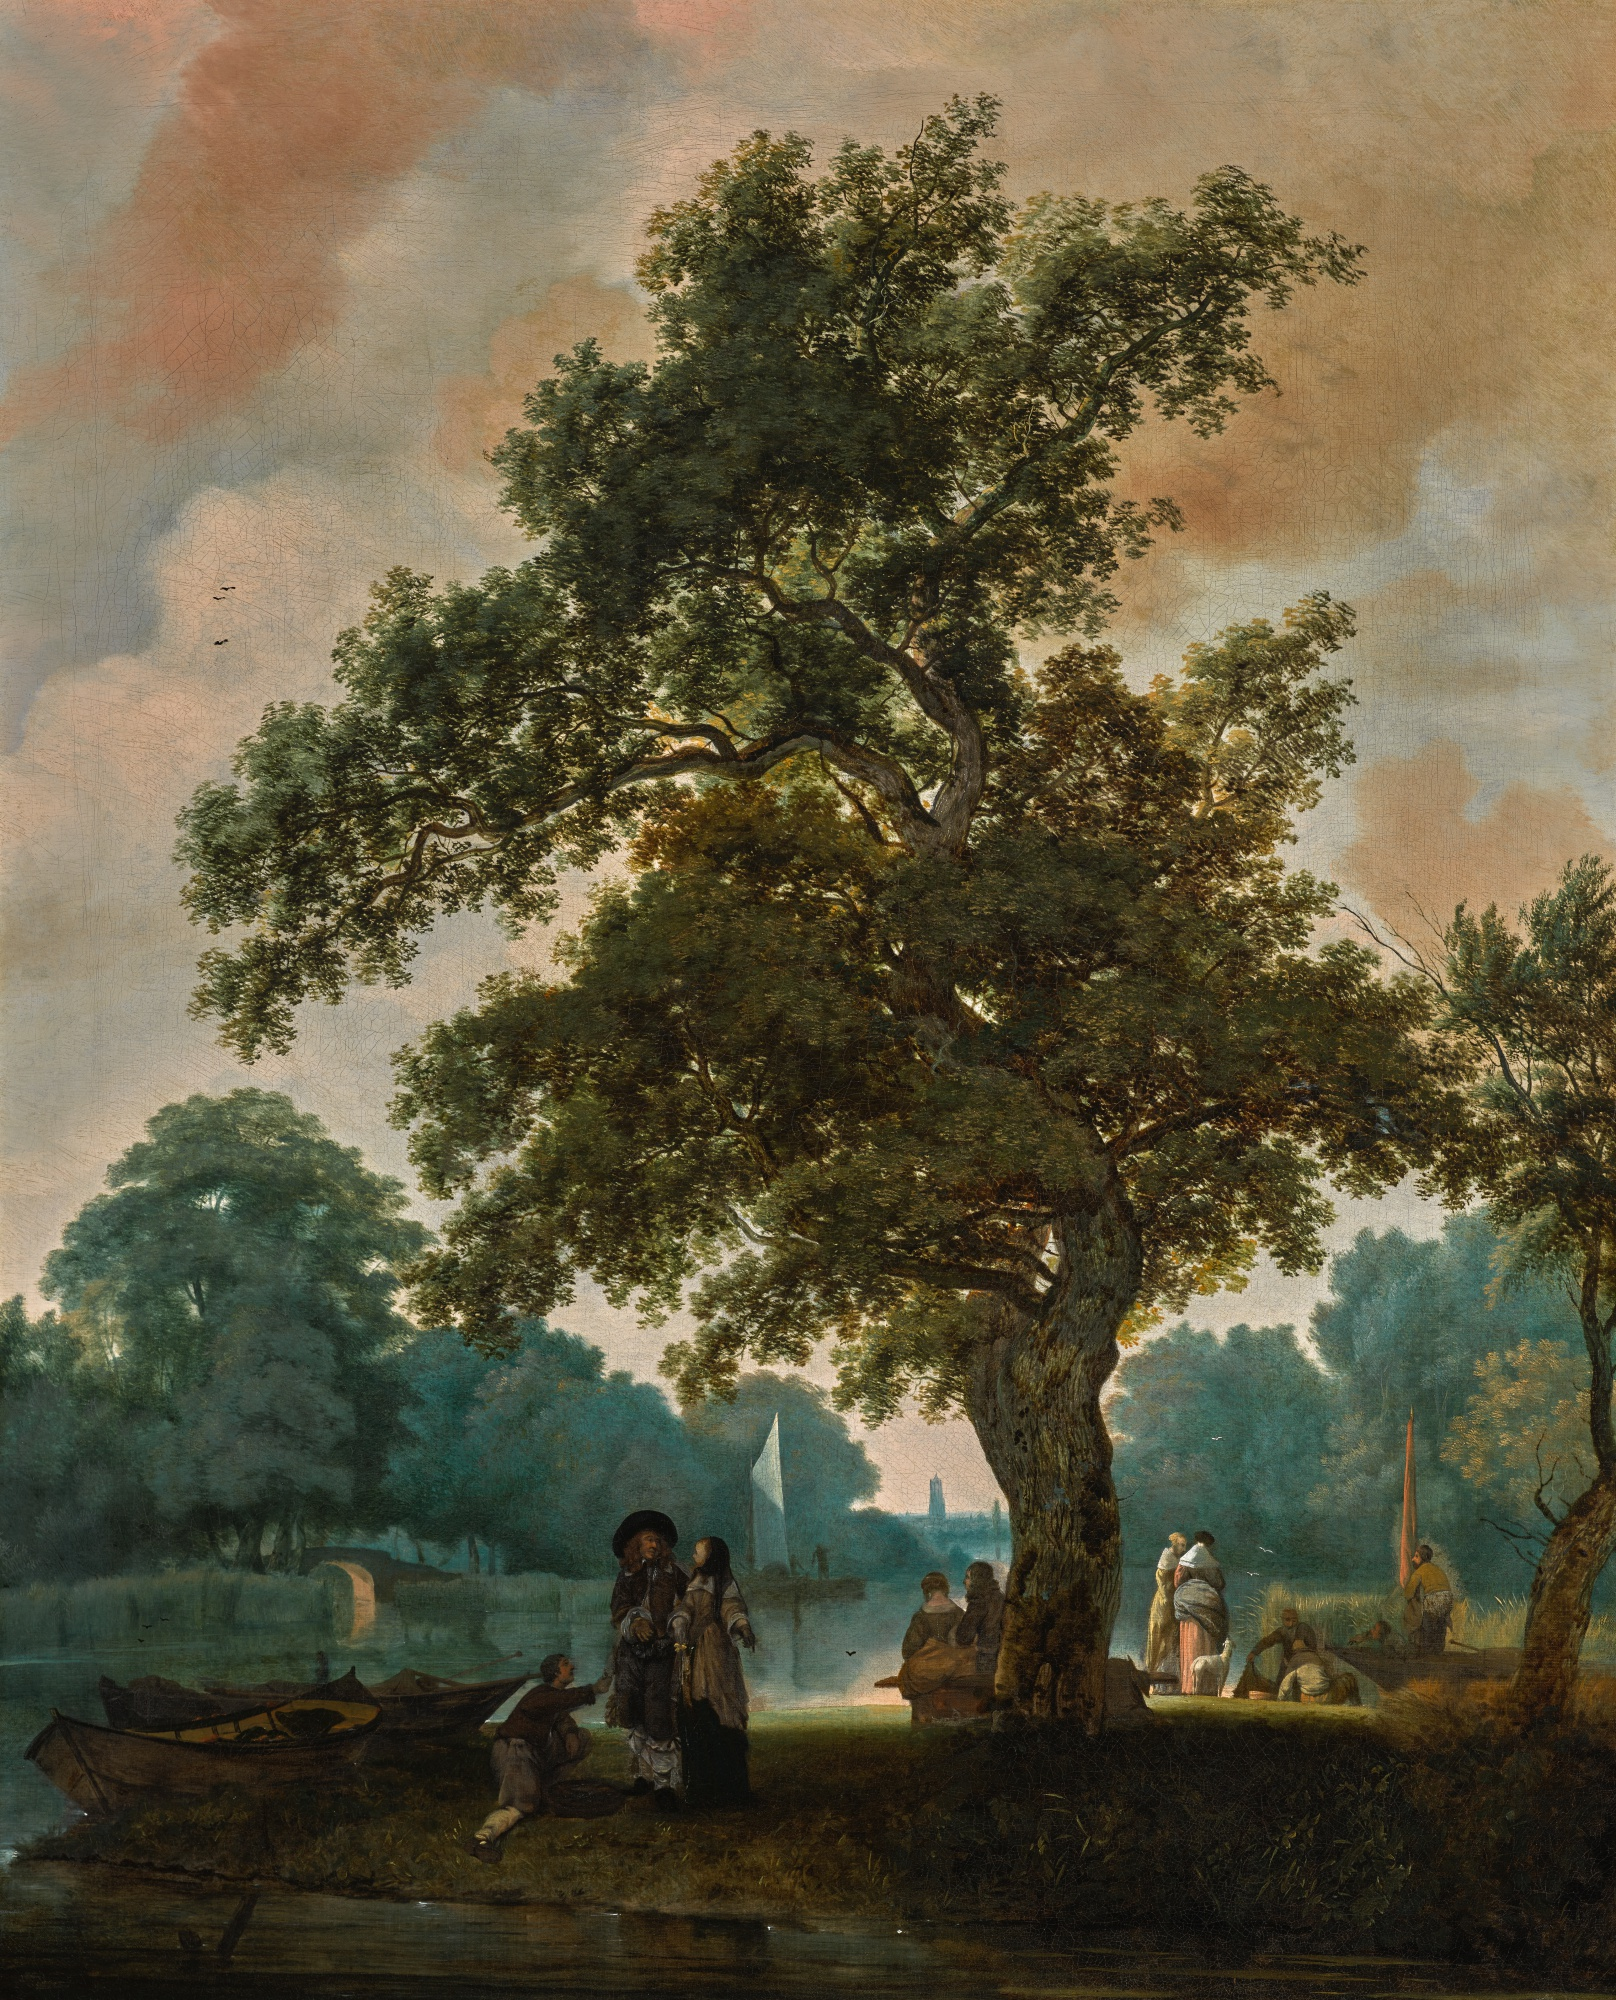 JACOB ESSELENS (Amsterdam 1627/28 - 1687) An elegant company by a lake, with Utrecht Cathedral in the distance